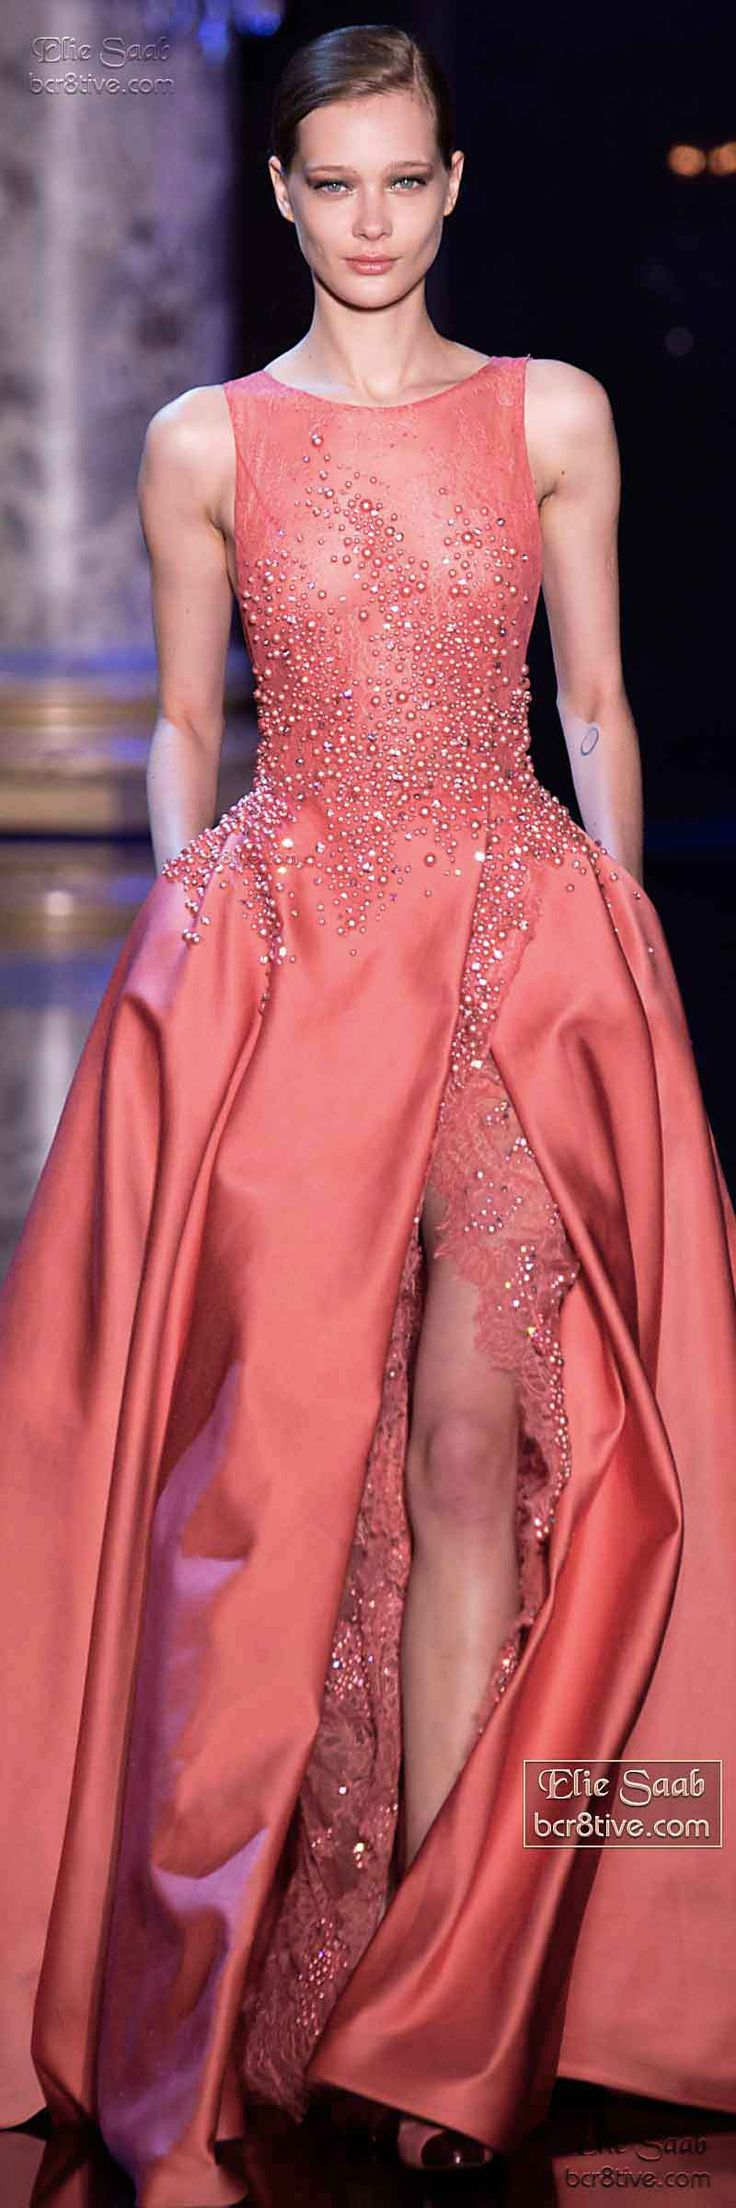 28 best Haute Runway images on Pinterest | High fashion, Couture ...